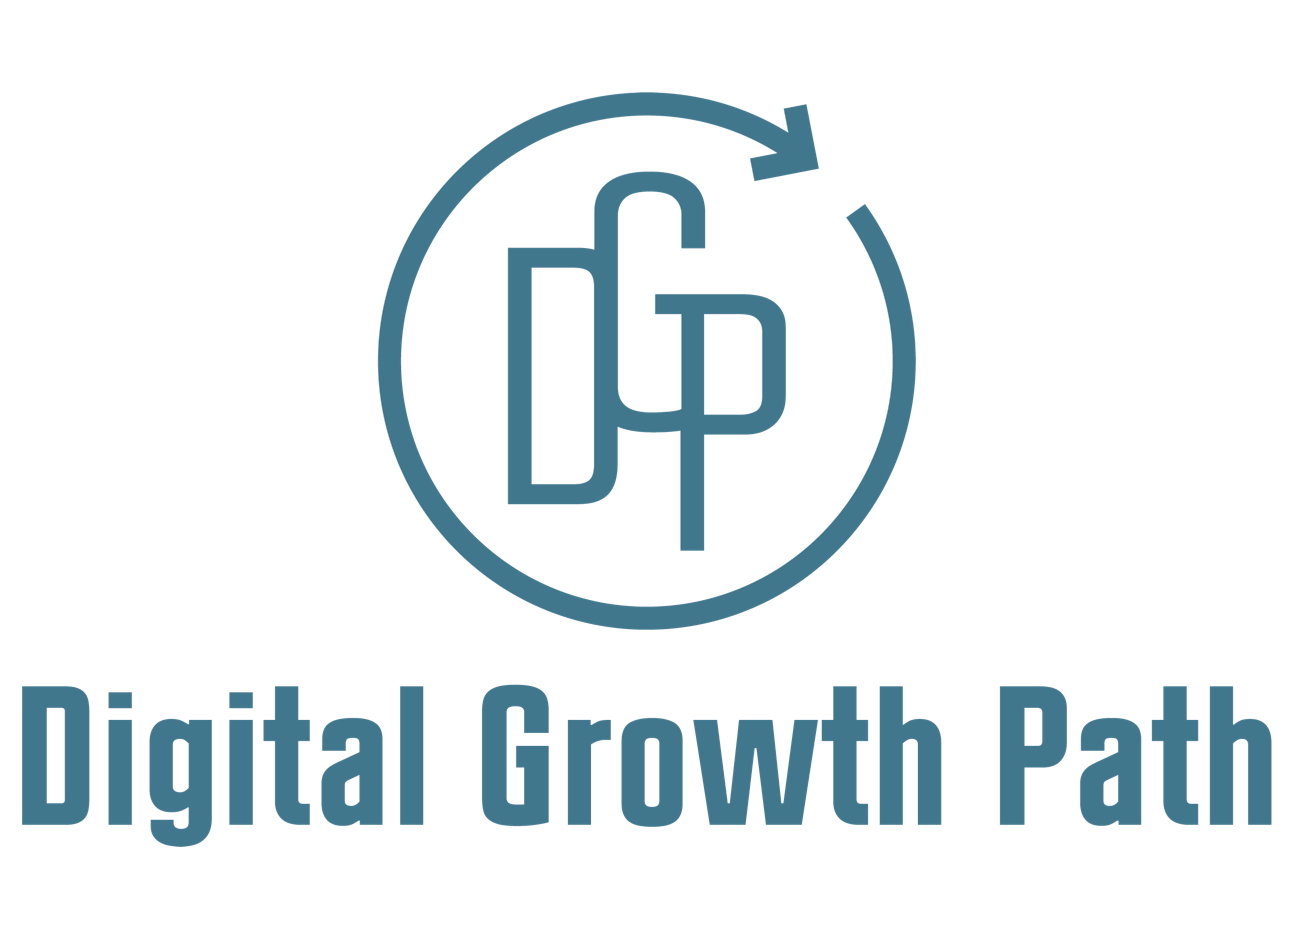 Digital Growth Path